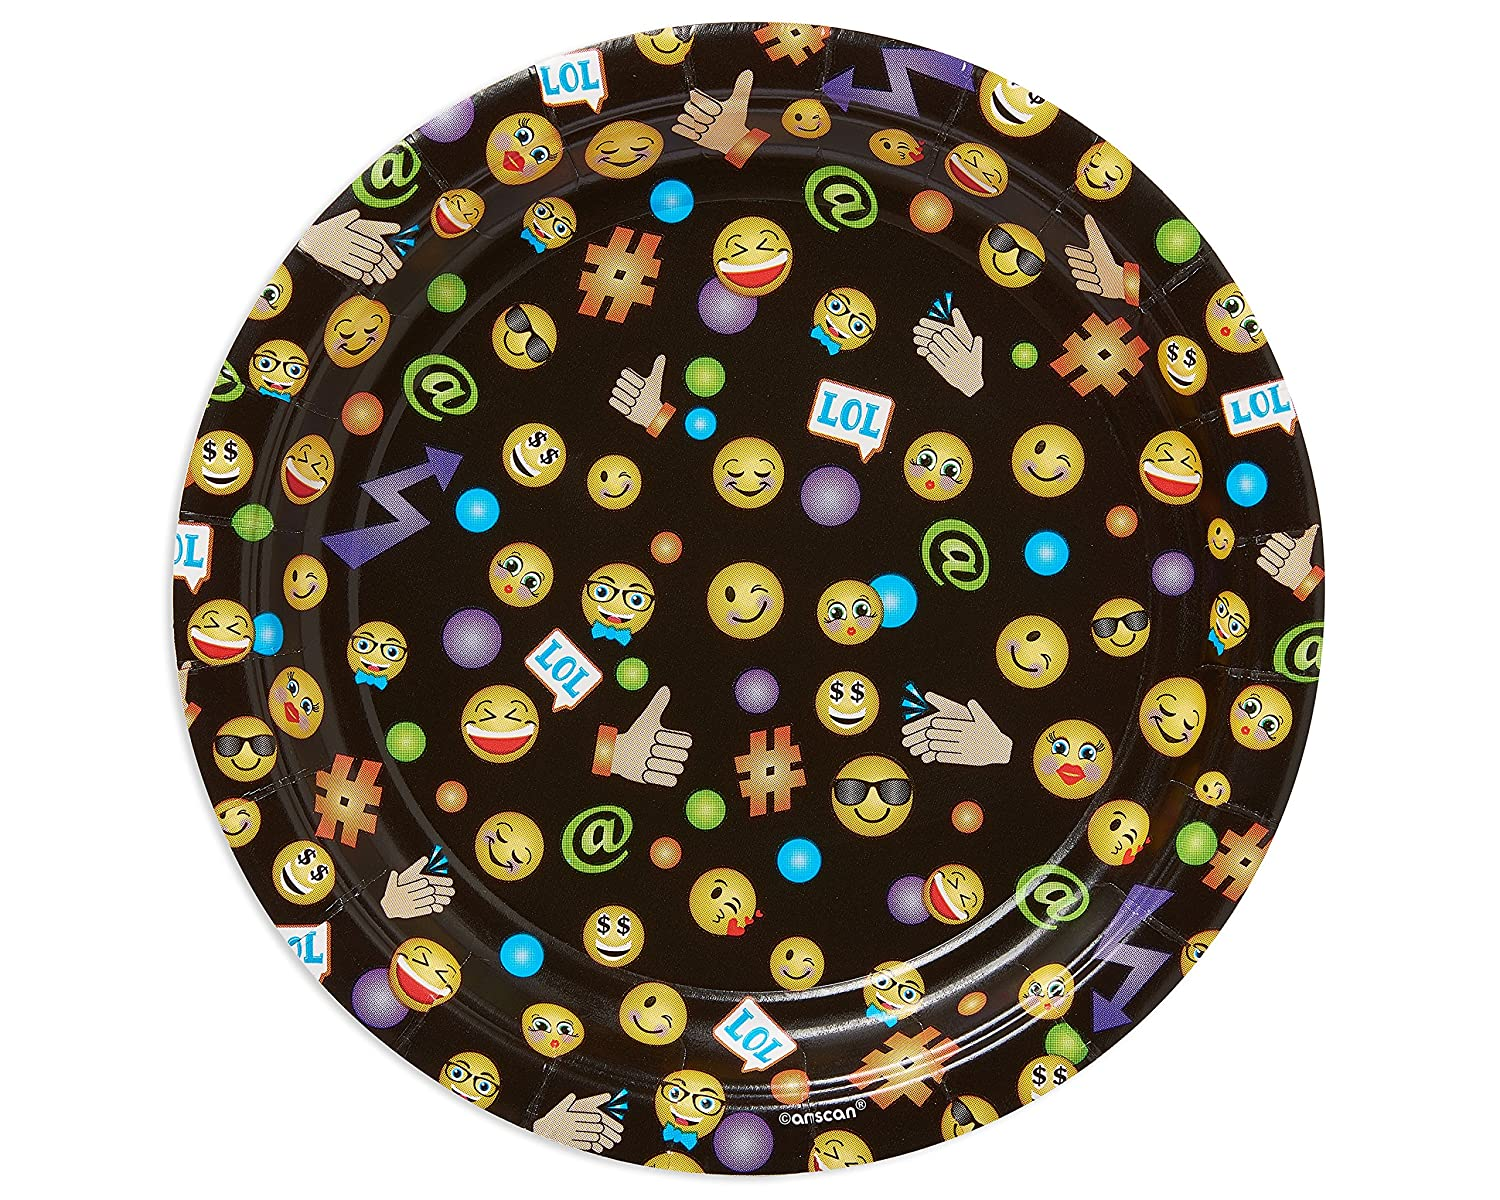 American Greetings LOL Emojis Party Supplies Paper Lunch Napkins 16-Count